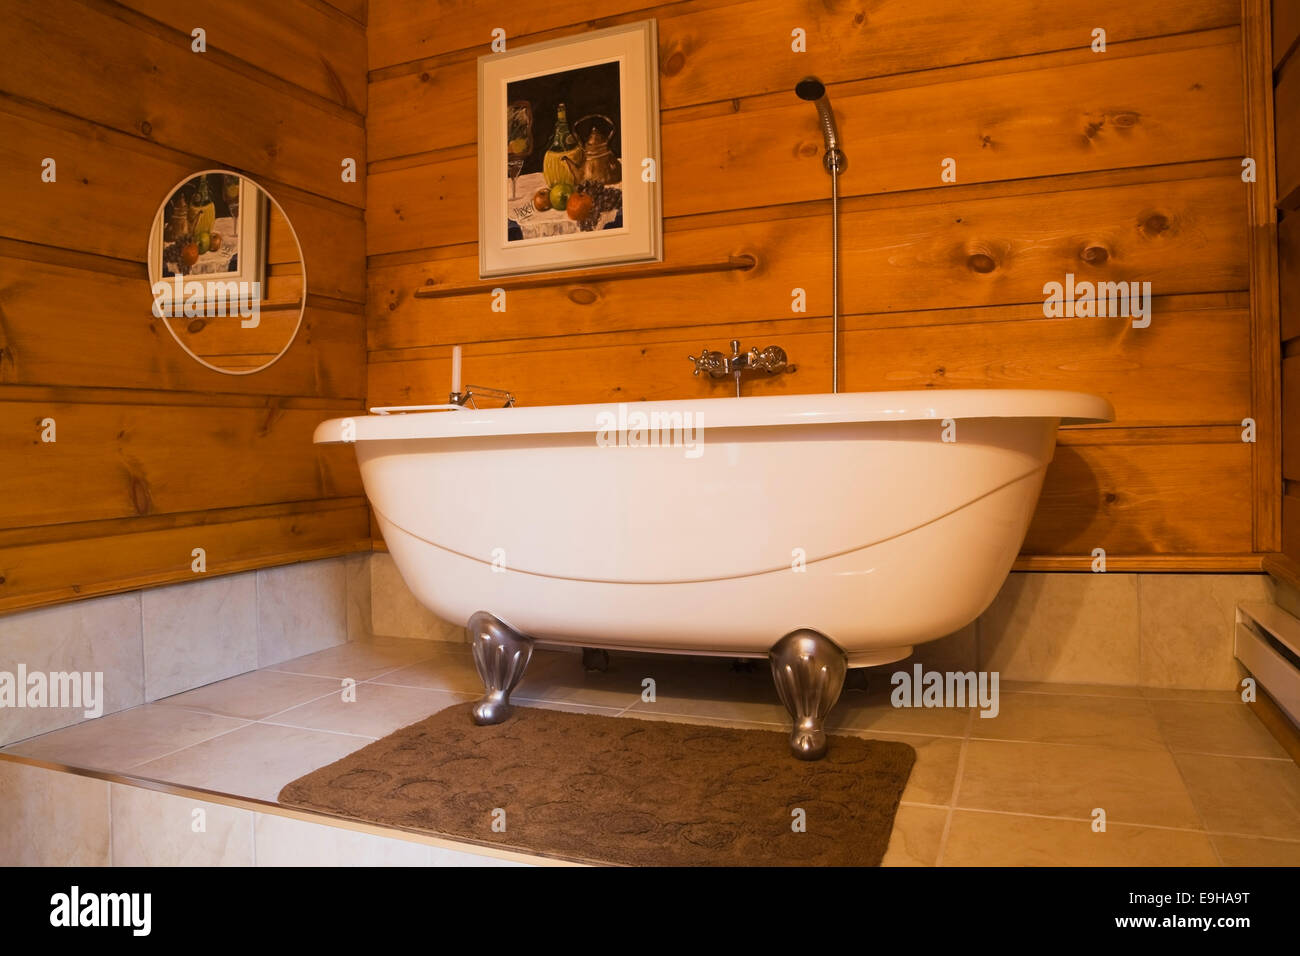 Roll Top Bath In A Bathroom Inside Canadiana Cottage White Pine Log Home Quebec Province Canada